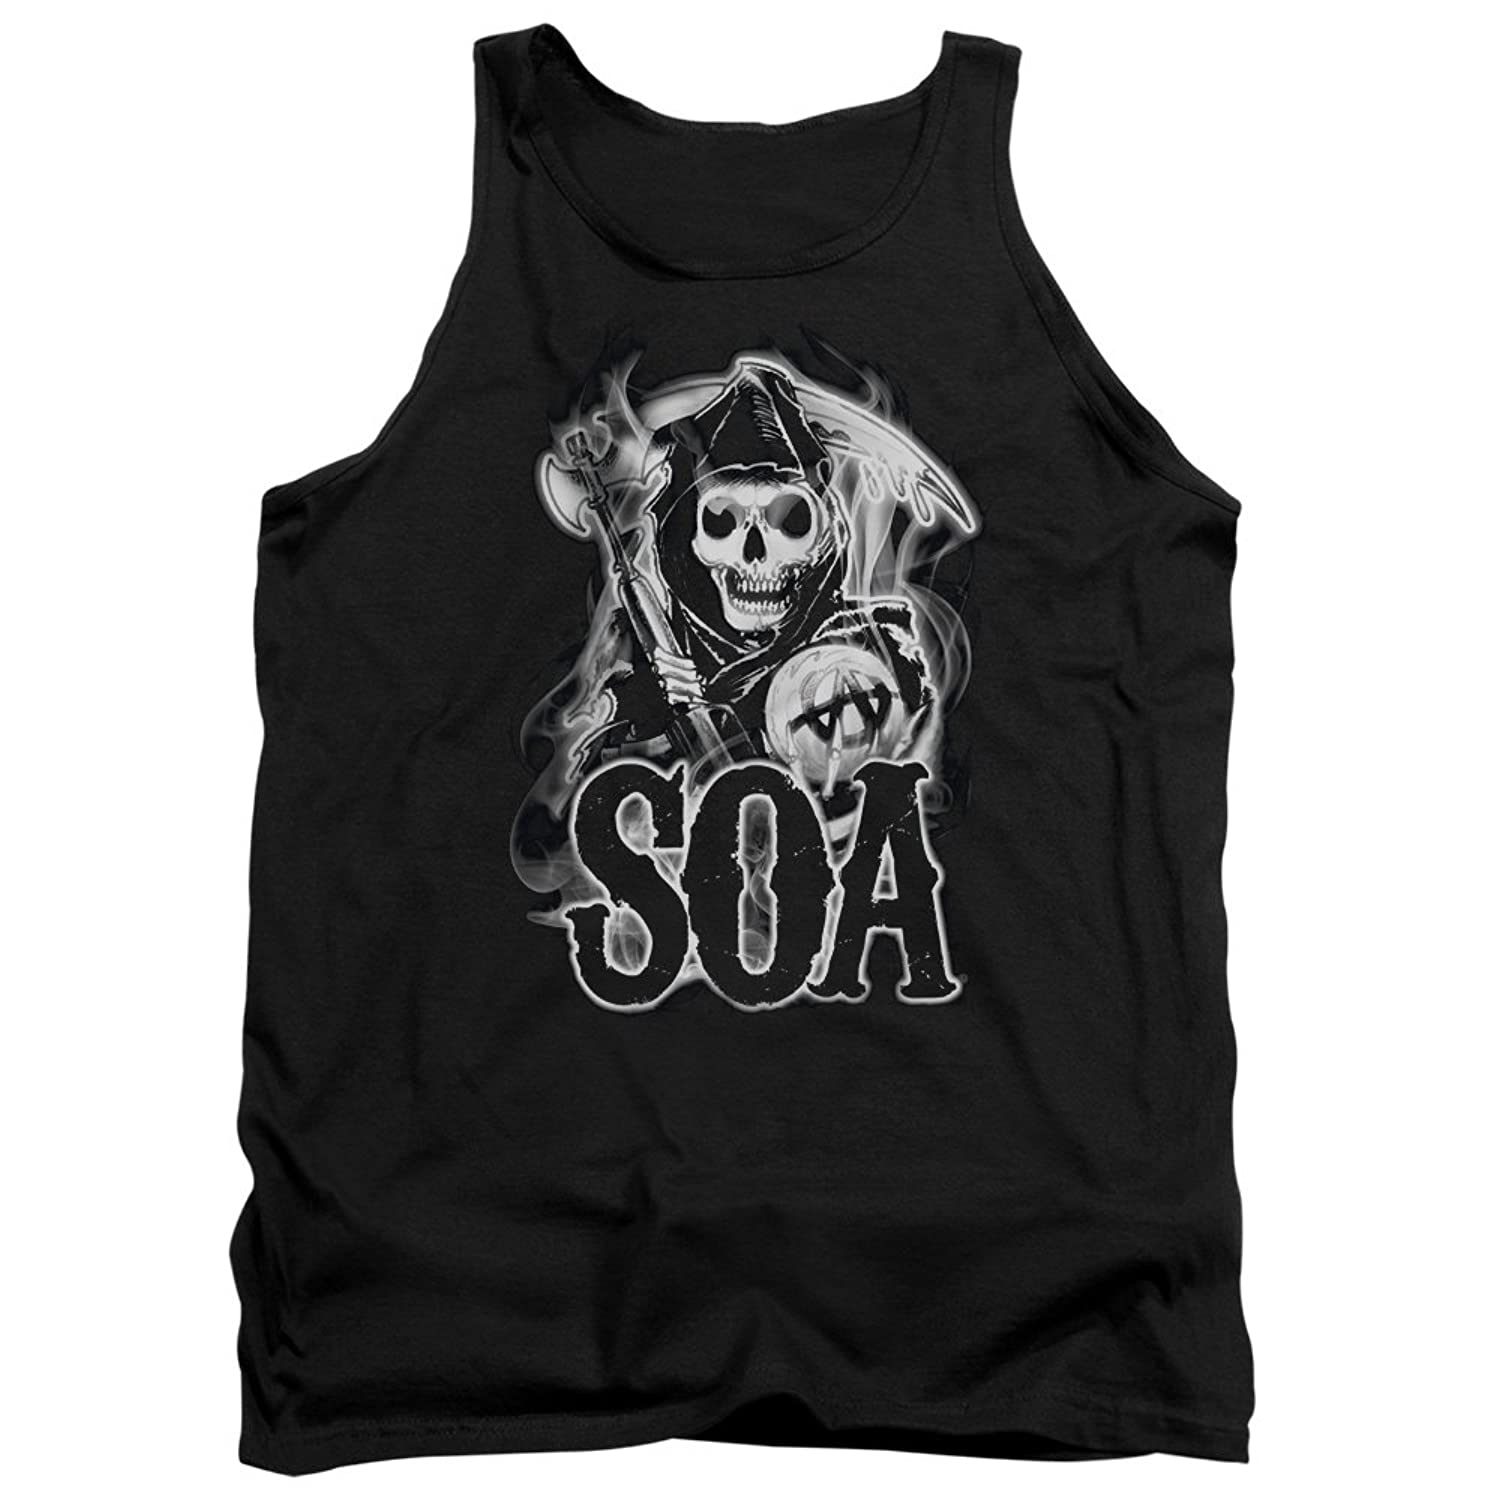 Sons Of Anarchy TV Series Smokey Biker Reaper And SOA Logo Adult Tank Top Shirt